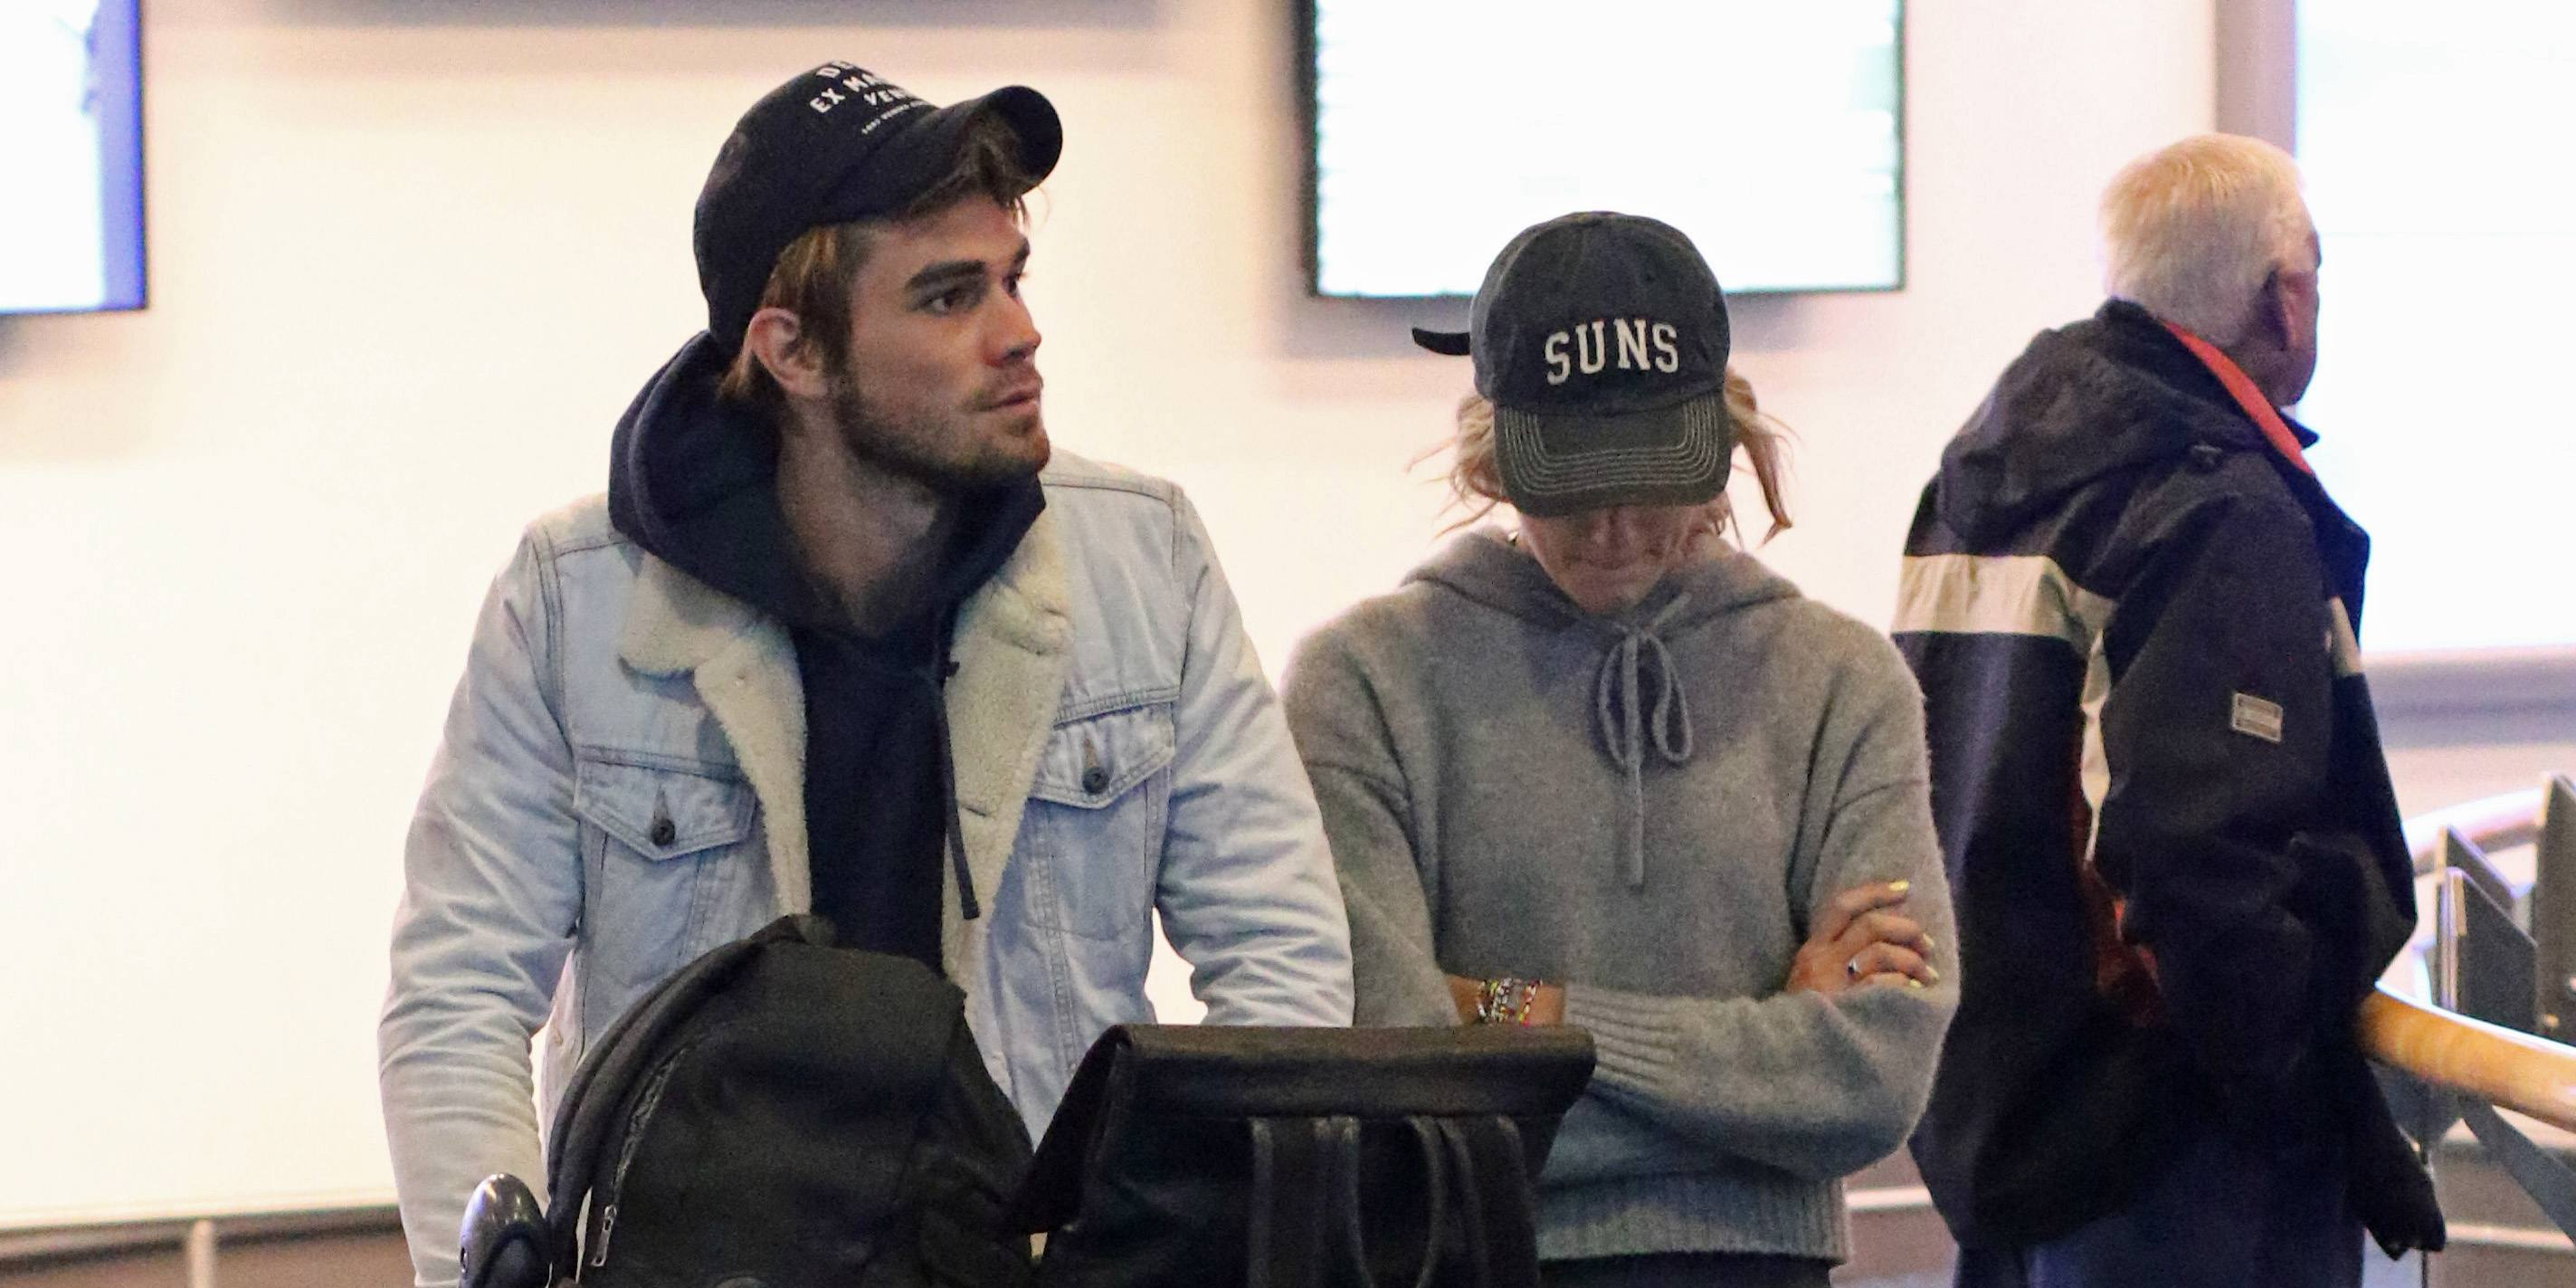 Spotted: KJ Apa arrives back in Vancouver to film 'Riverdale' (PHOTOS)